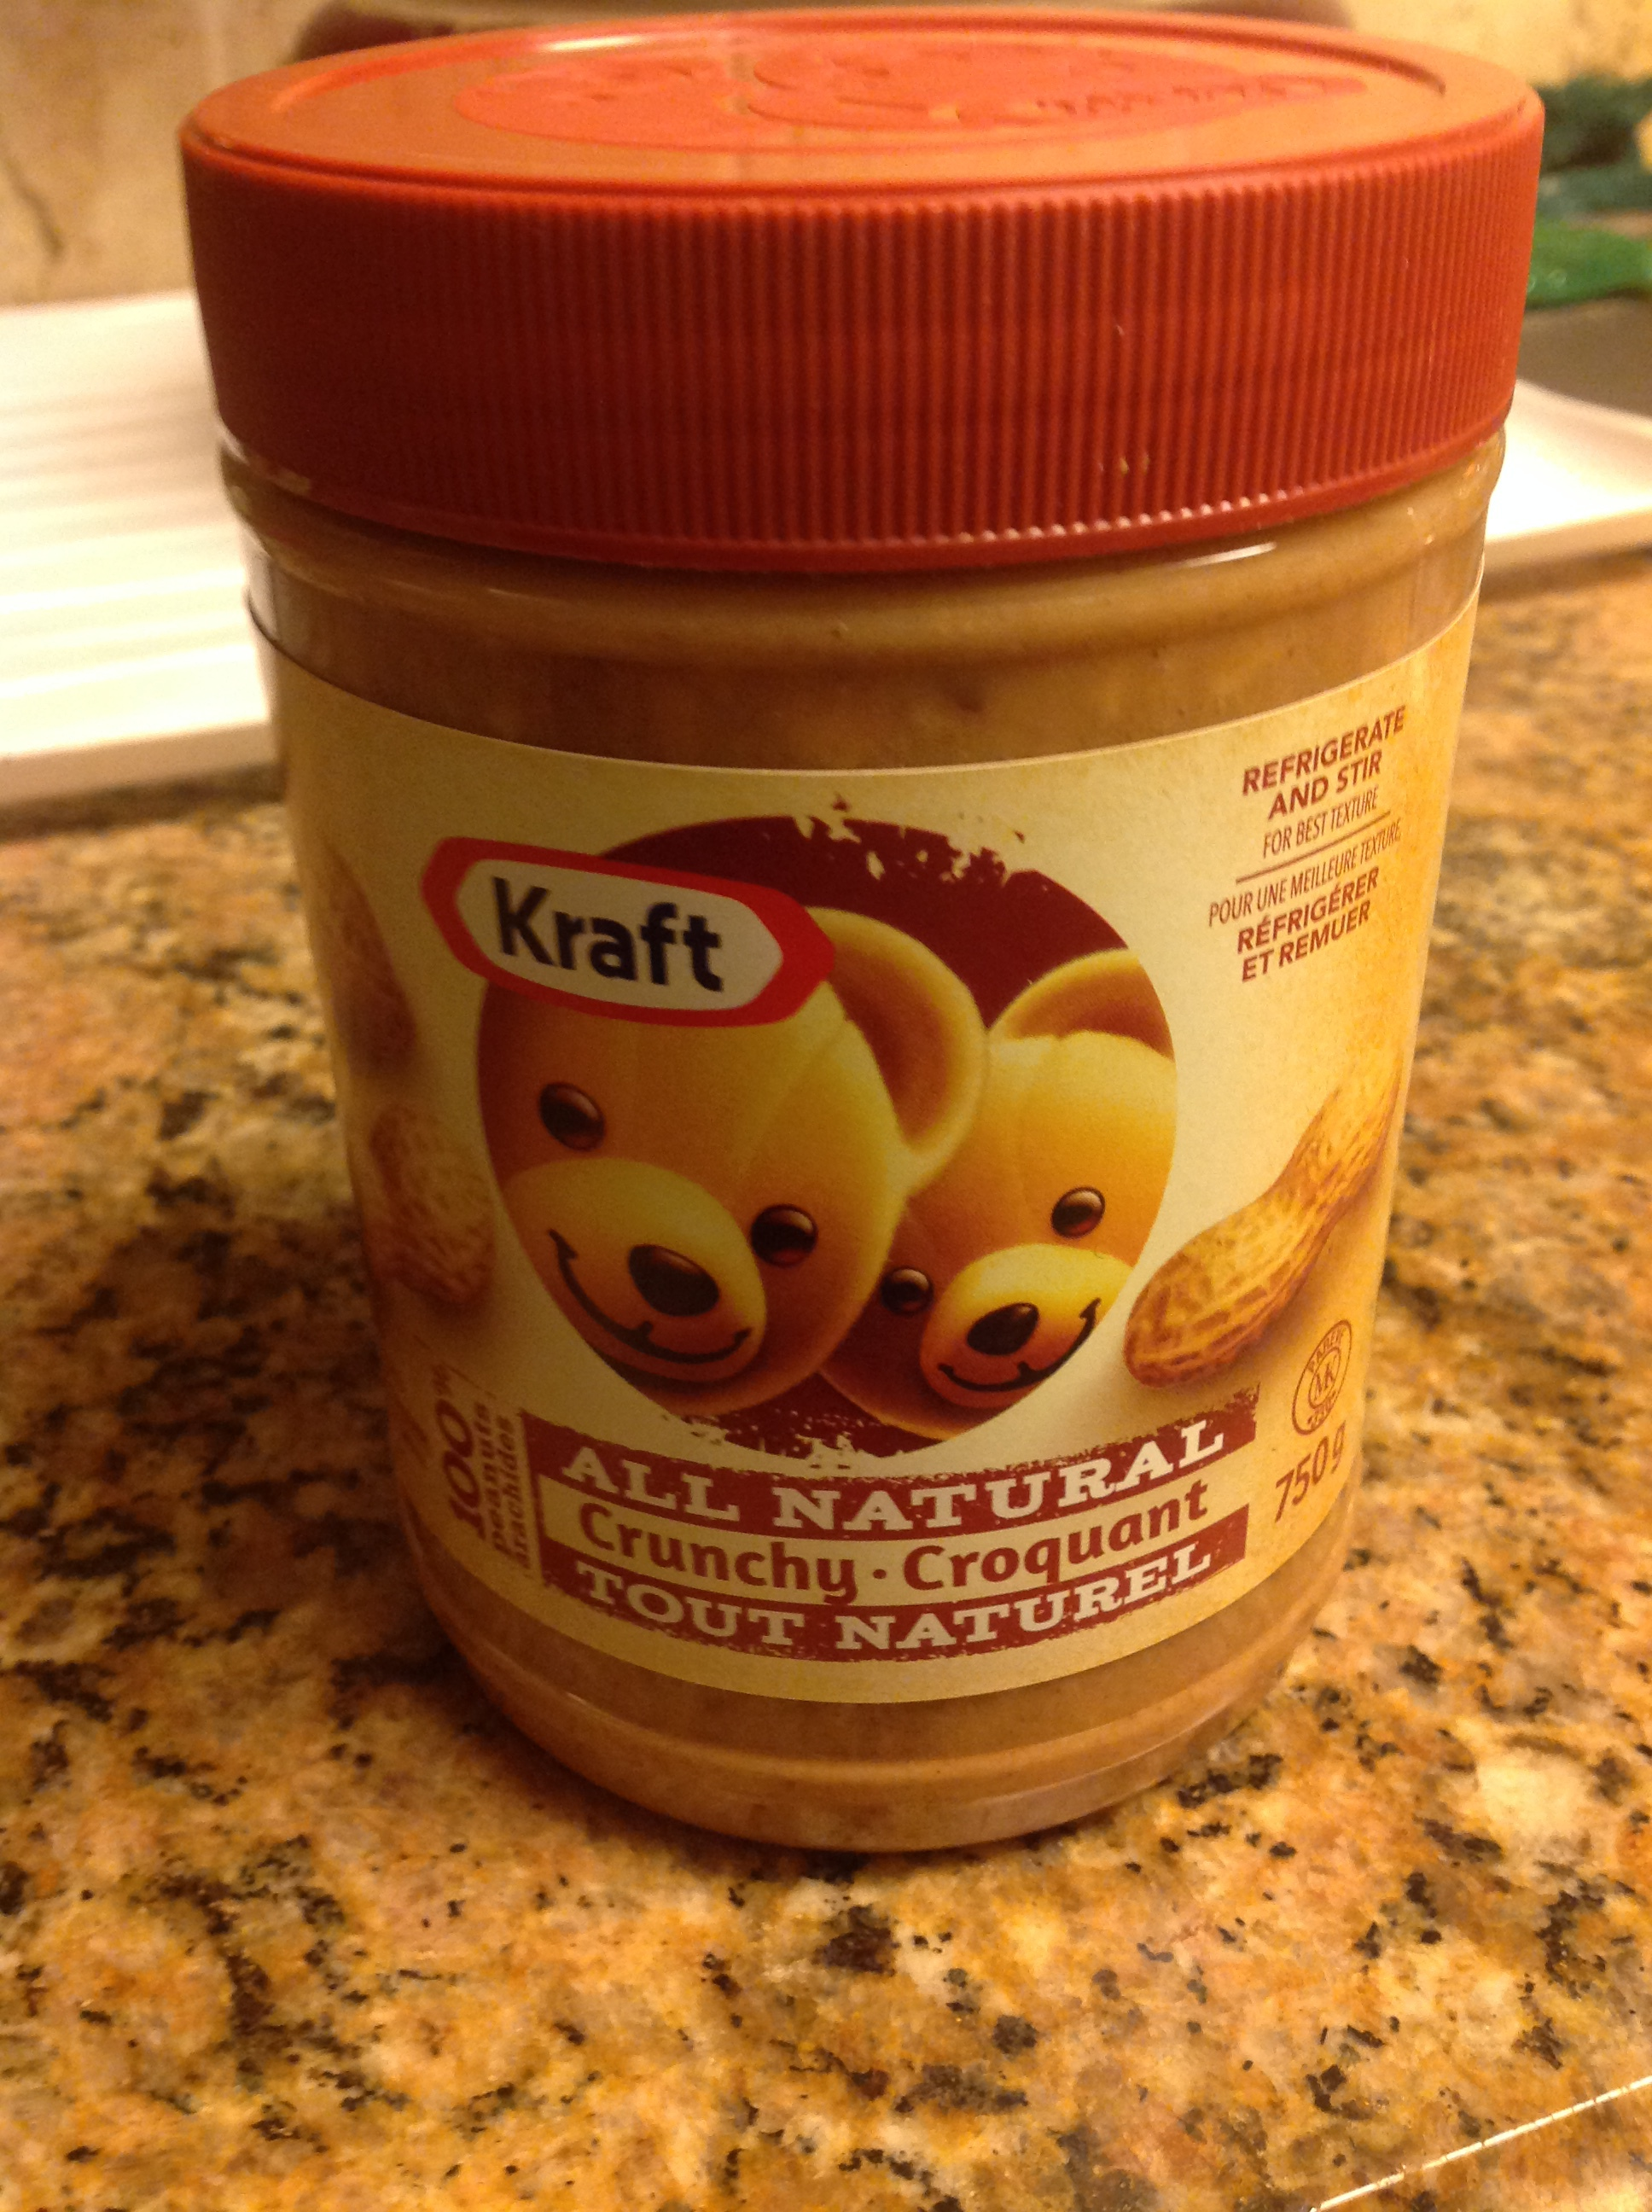 All Natural Beauty Products For: Kraft All Natural Crunchy Peanut Butter Reviews In Dips